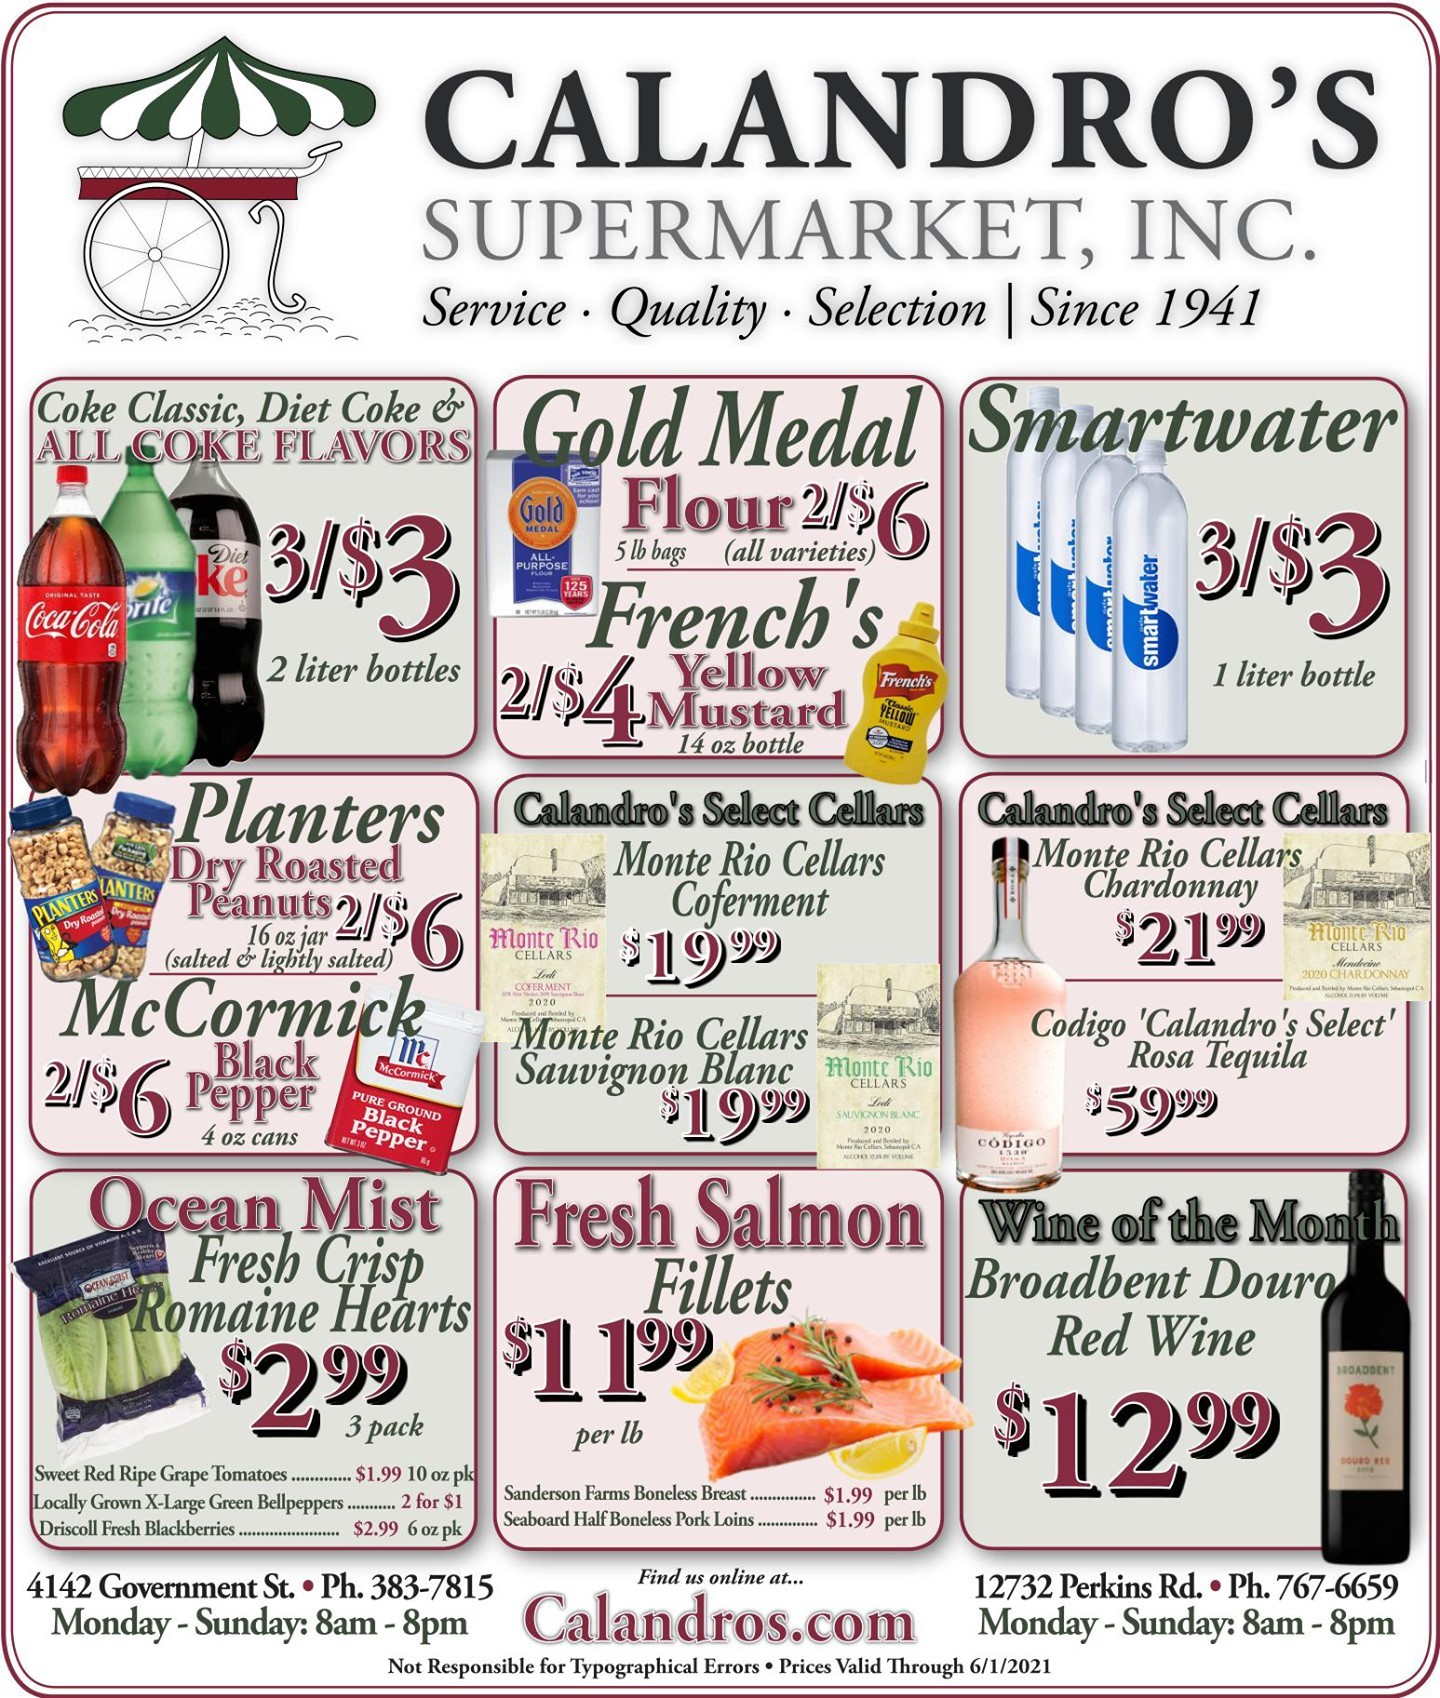 Calandro's Amazing Deals and Specials for This Week! (6/3/2021 – 6/8/2021) http://dlvr.it/S0yhRJ…